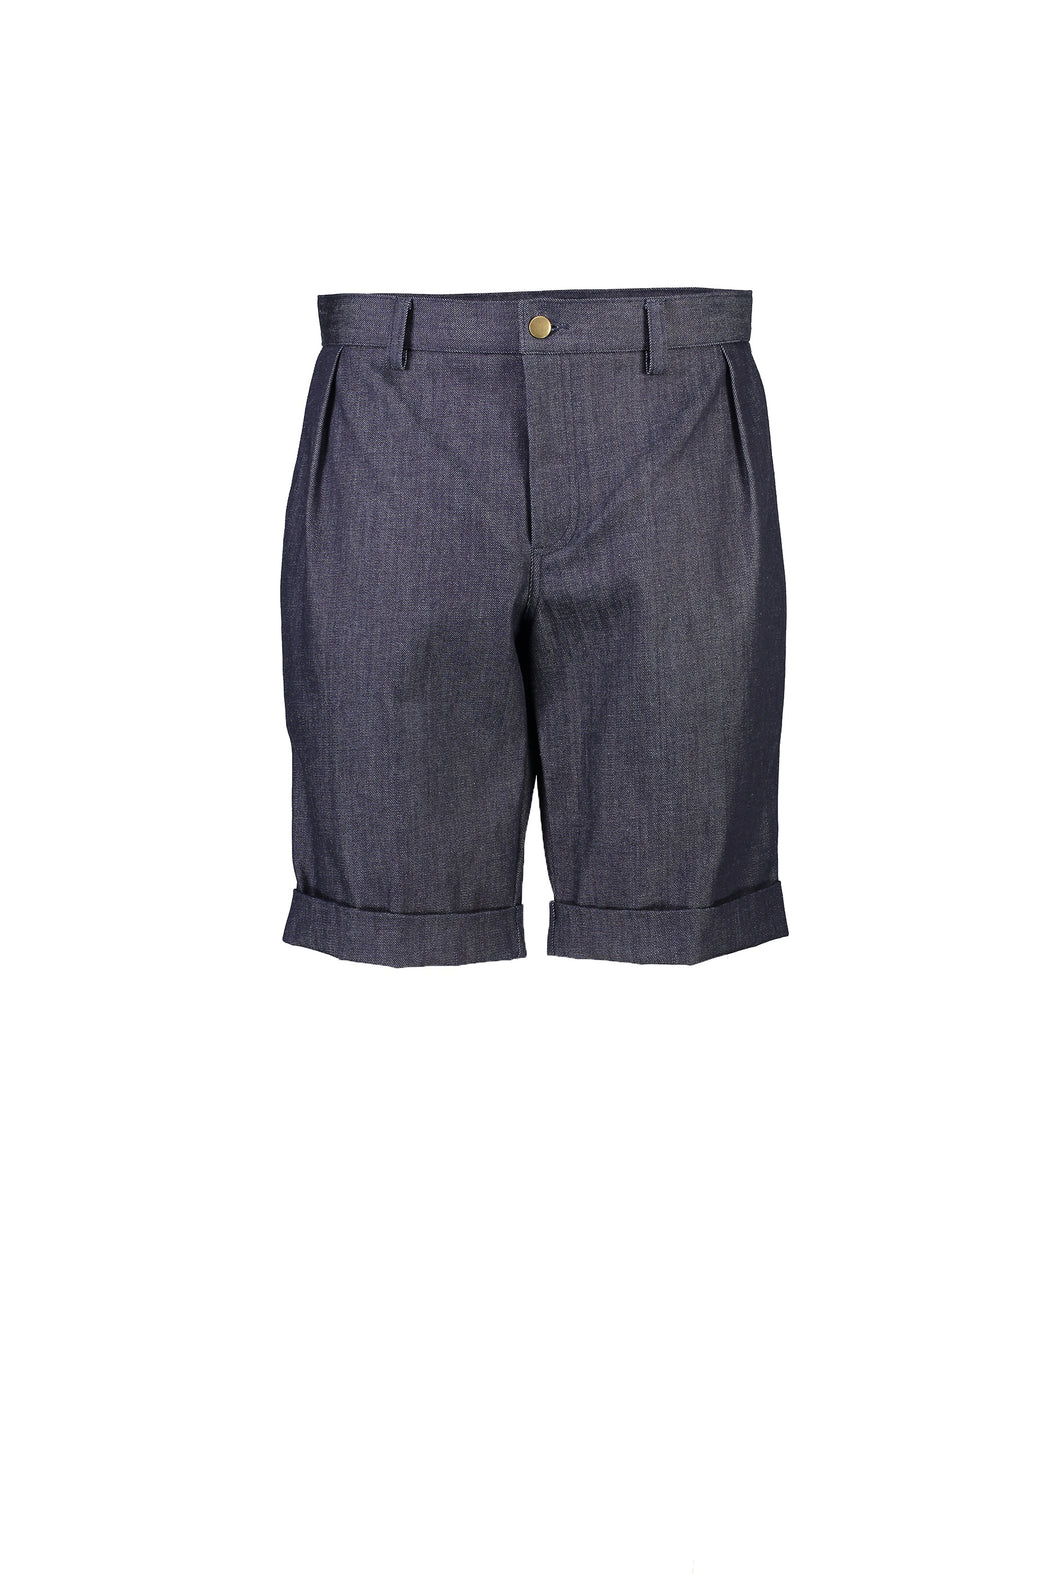 WORLDman 4406 Super Freak Short Navy Denim